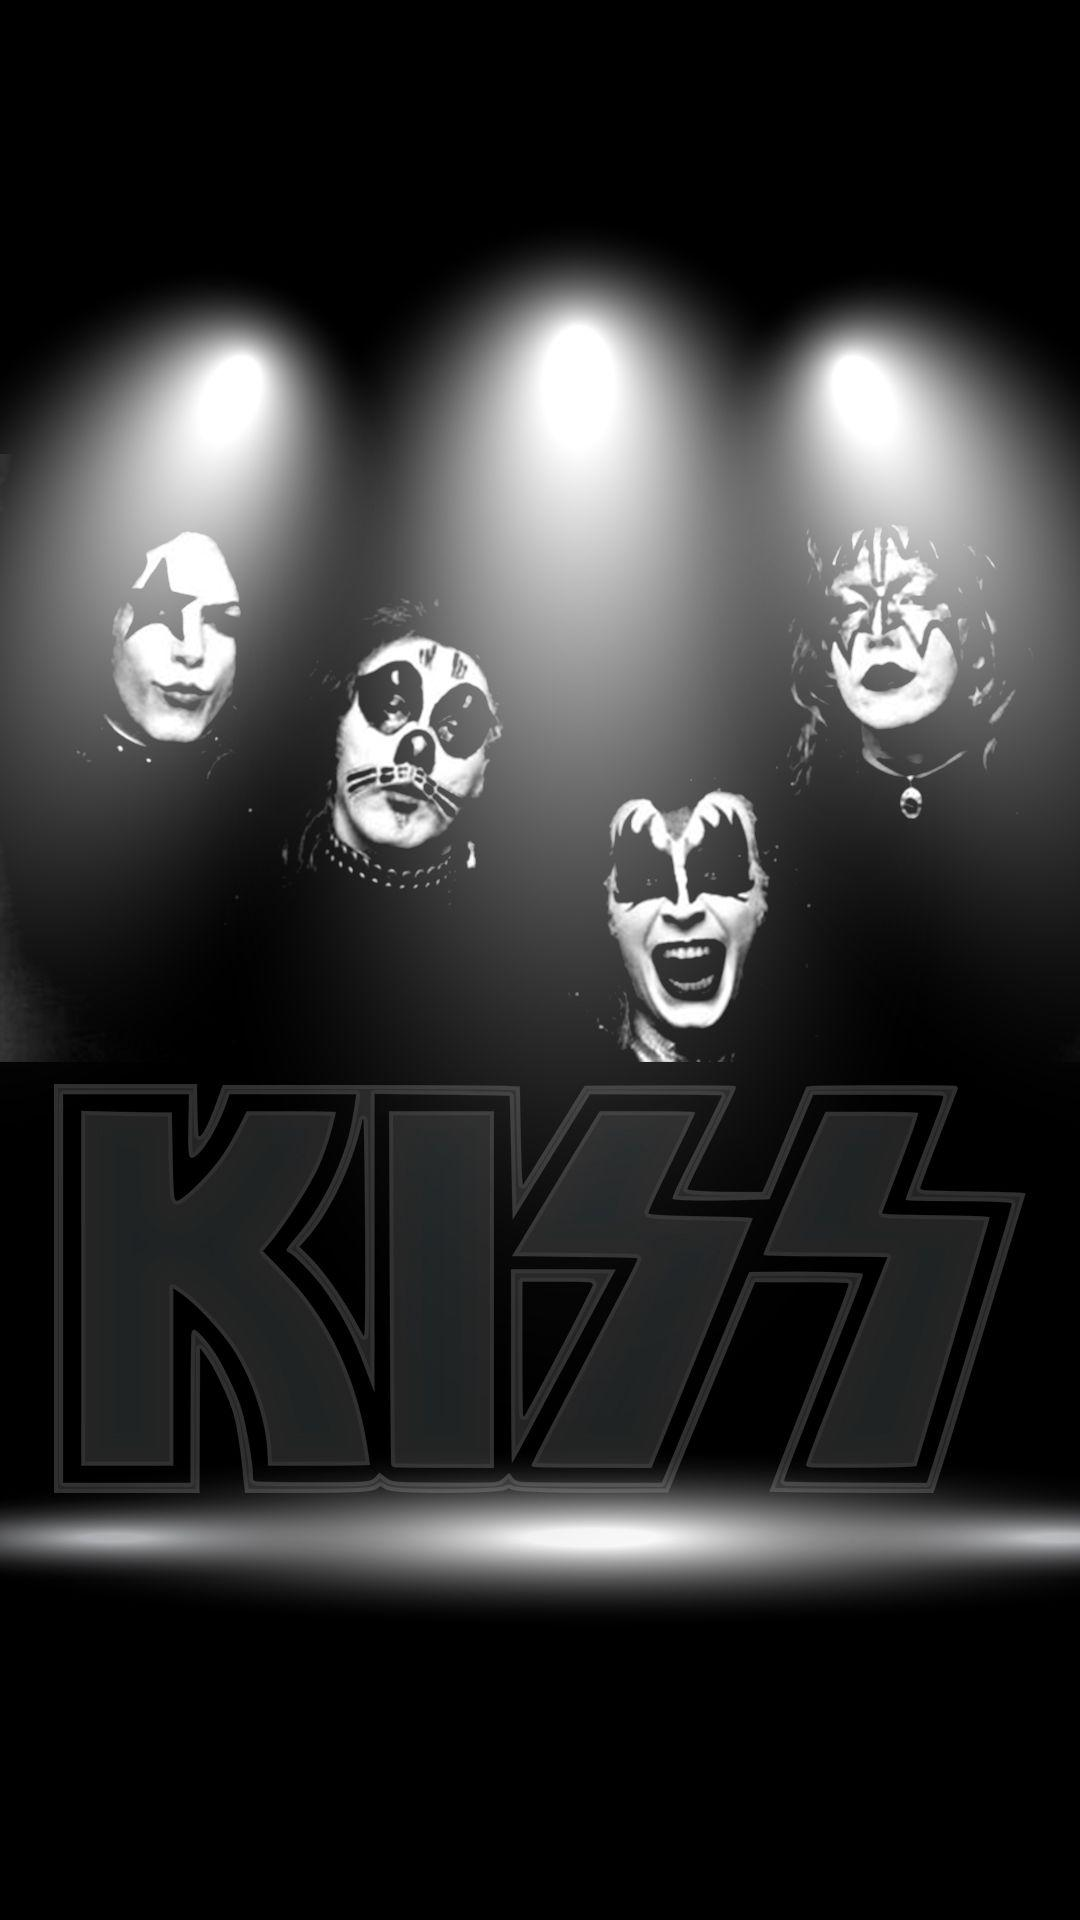 Kiss HD Mobile Wallpapers - Wallpaper Cave